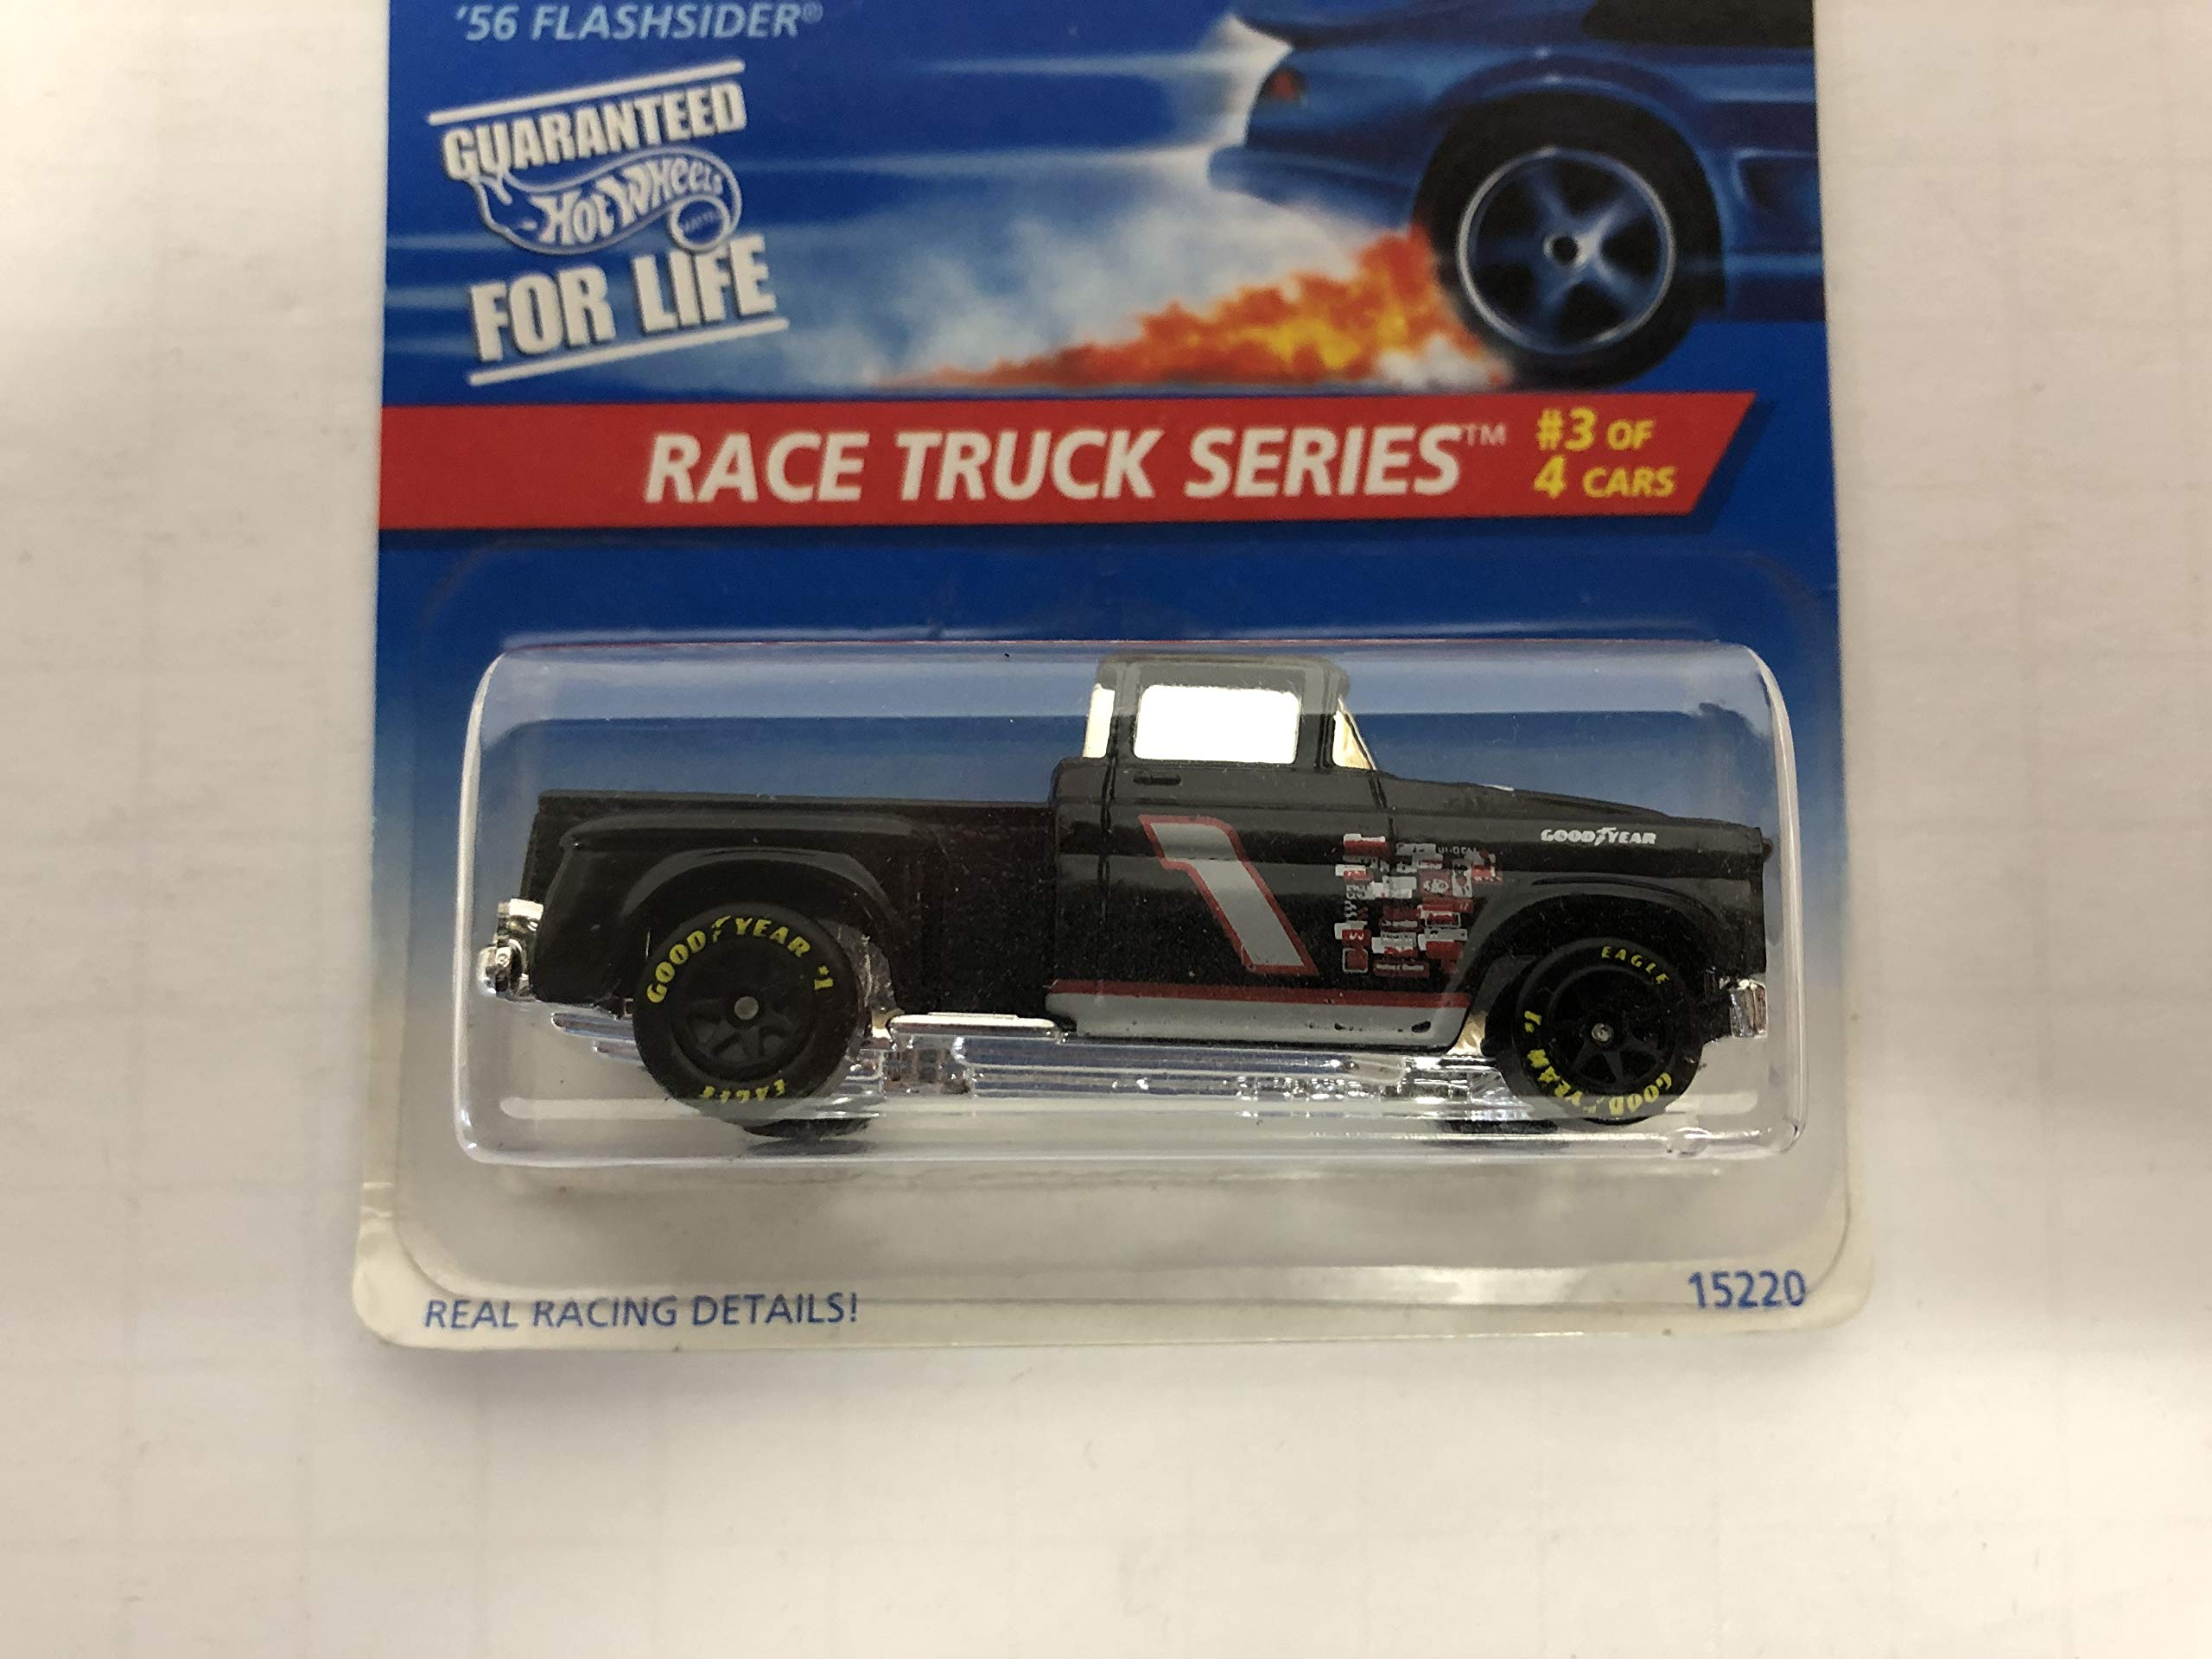 '56 FLASHSIDER Race Truck Series 1996 Hot Wheels No. 15220 diecast 1/64 scale